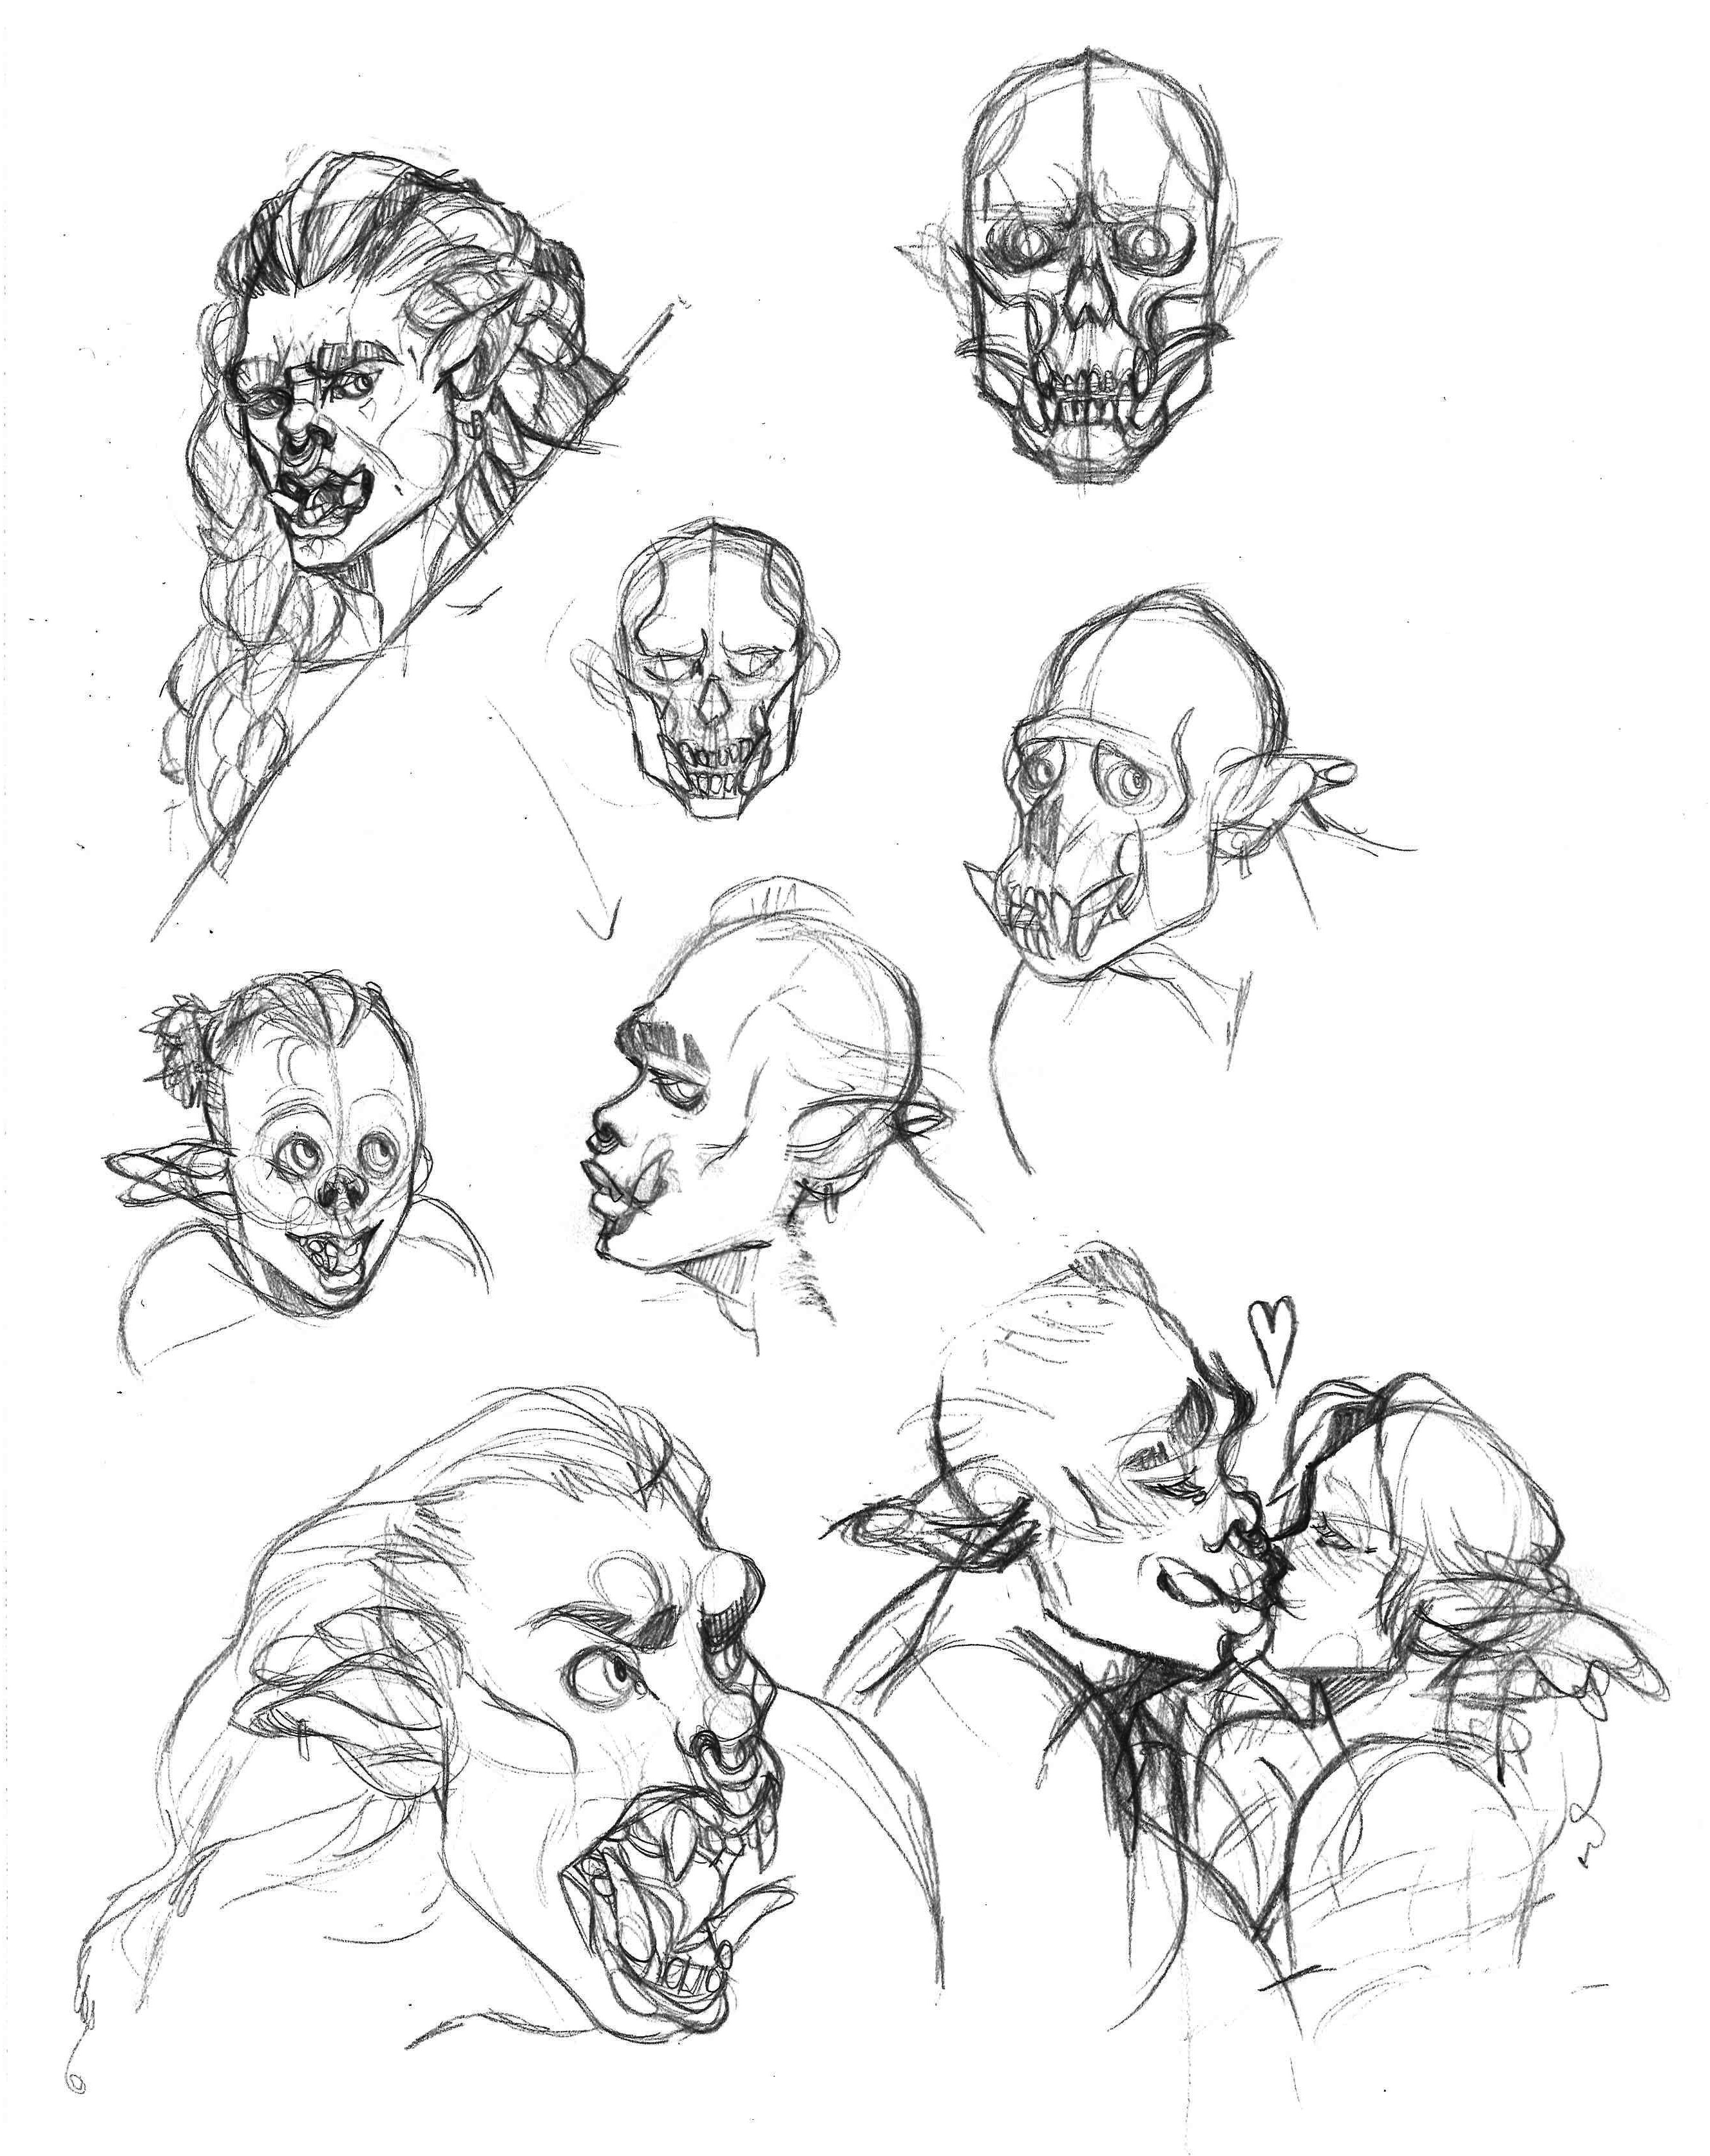 sketchpage showing how I figured out some orc facial anatomy. Looking at gorilla skulls helped a great deal in figuring out a humanoid face with all those big teeth!